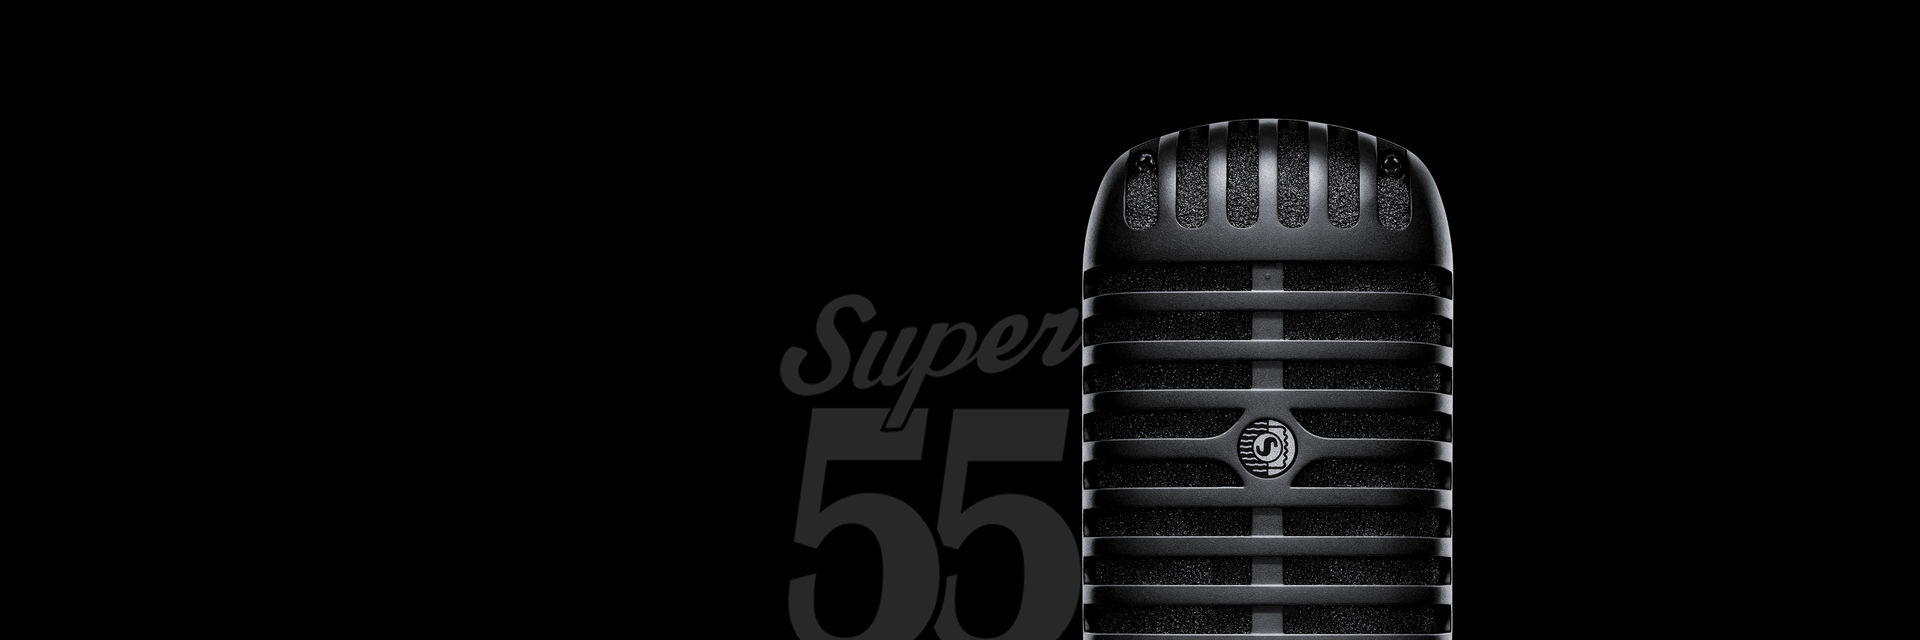 super-55-blk-slide_header-shure_eu_2017